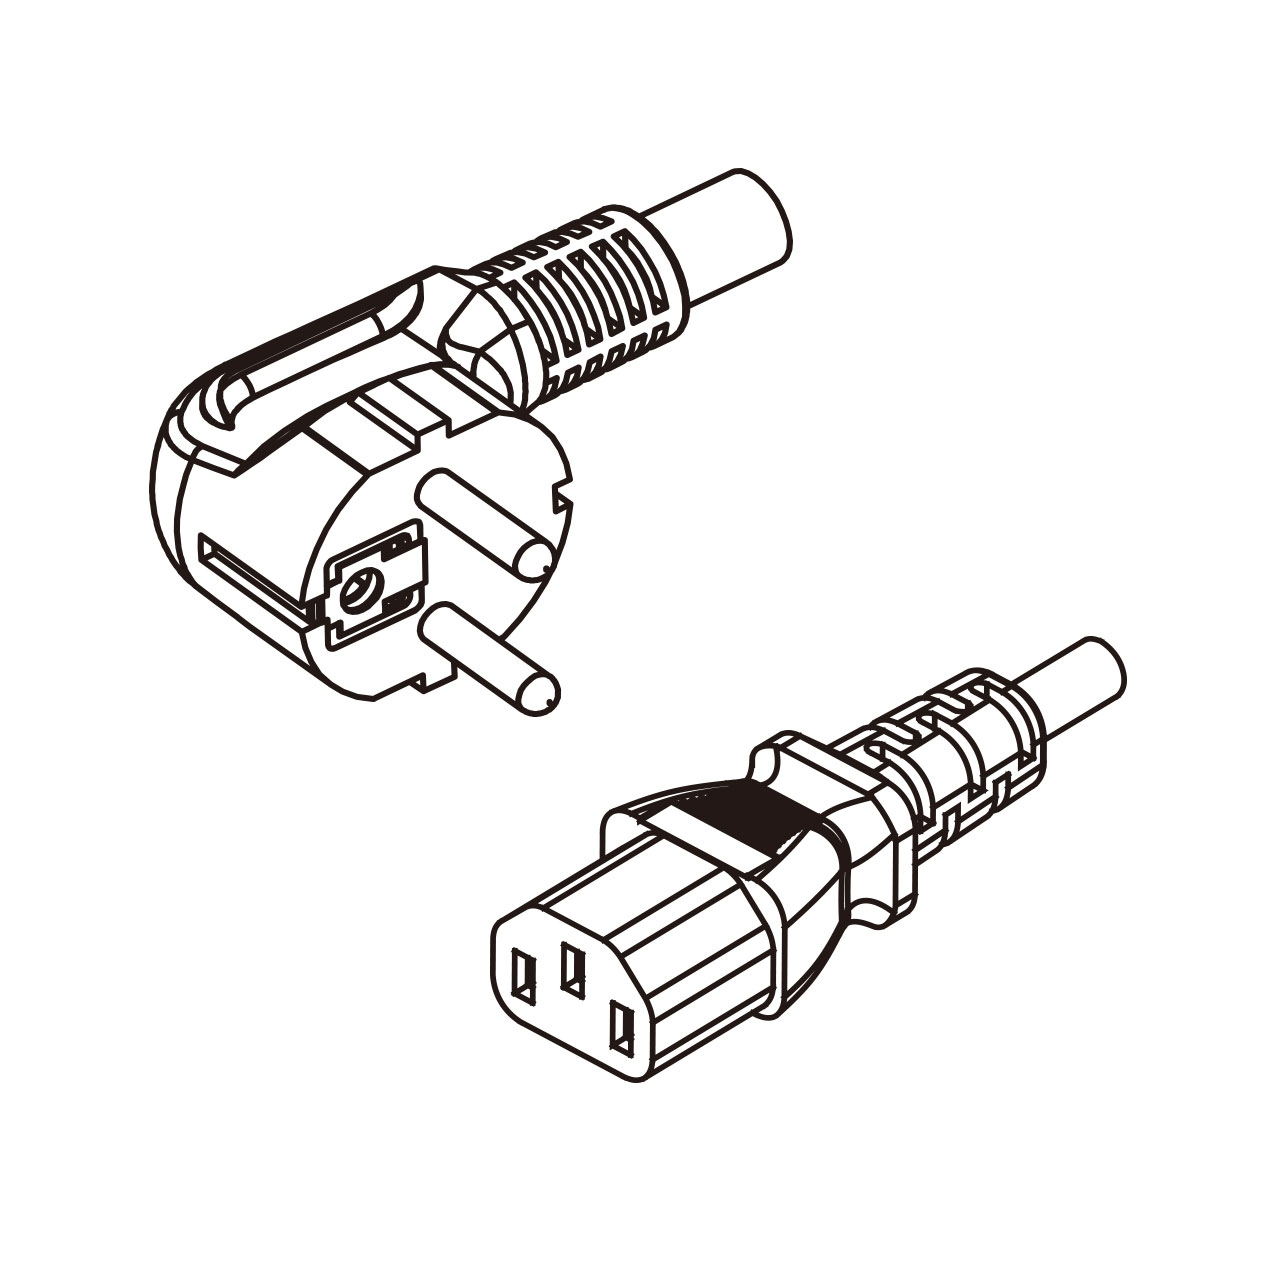 3 Pin Iec 320 C13 Ac Pvc Cord Set